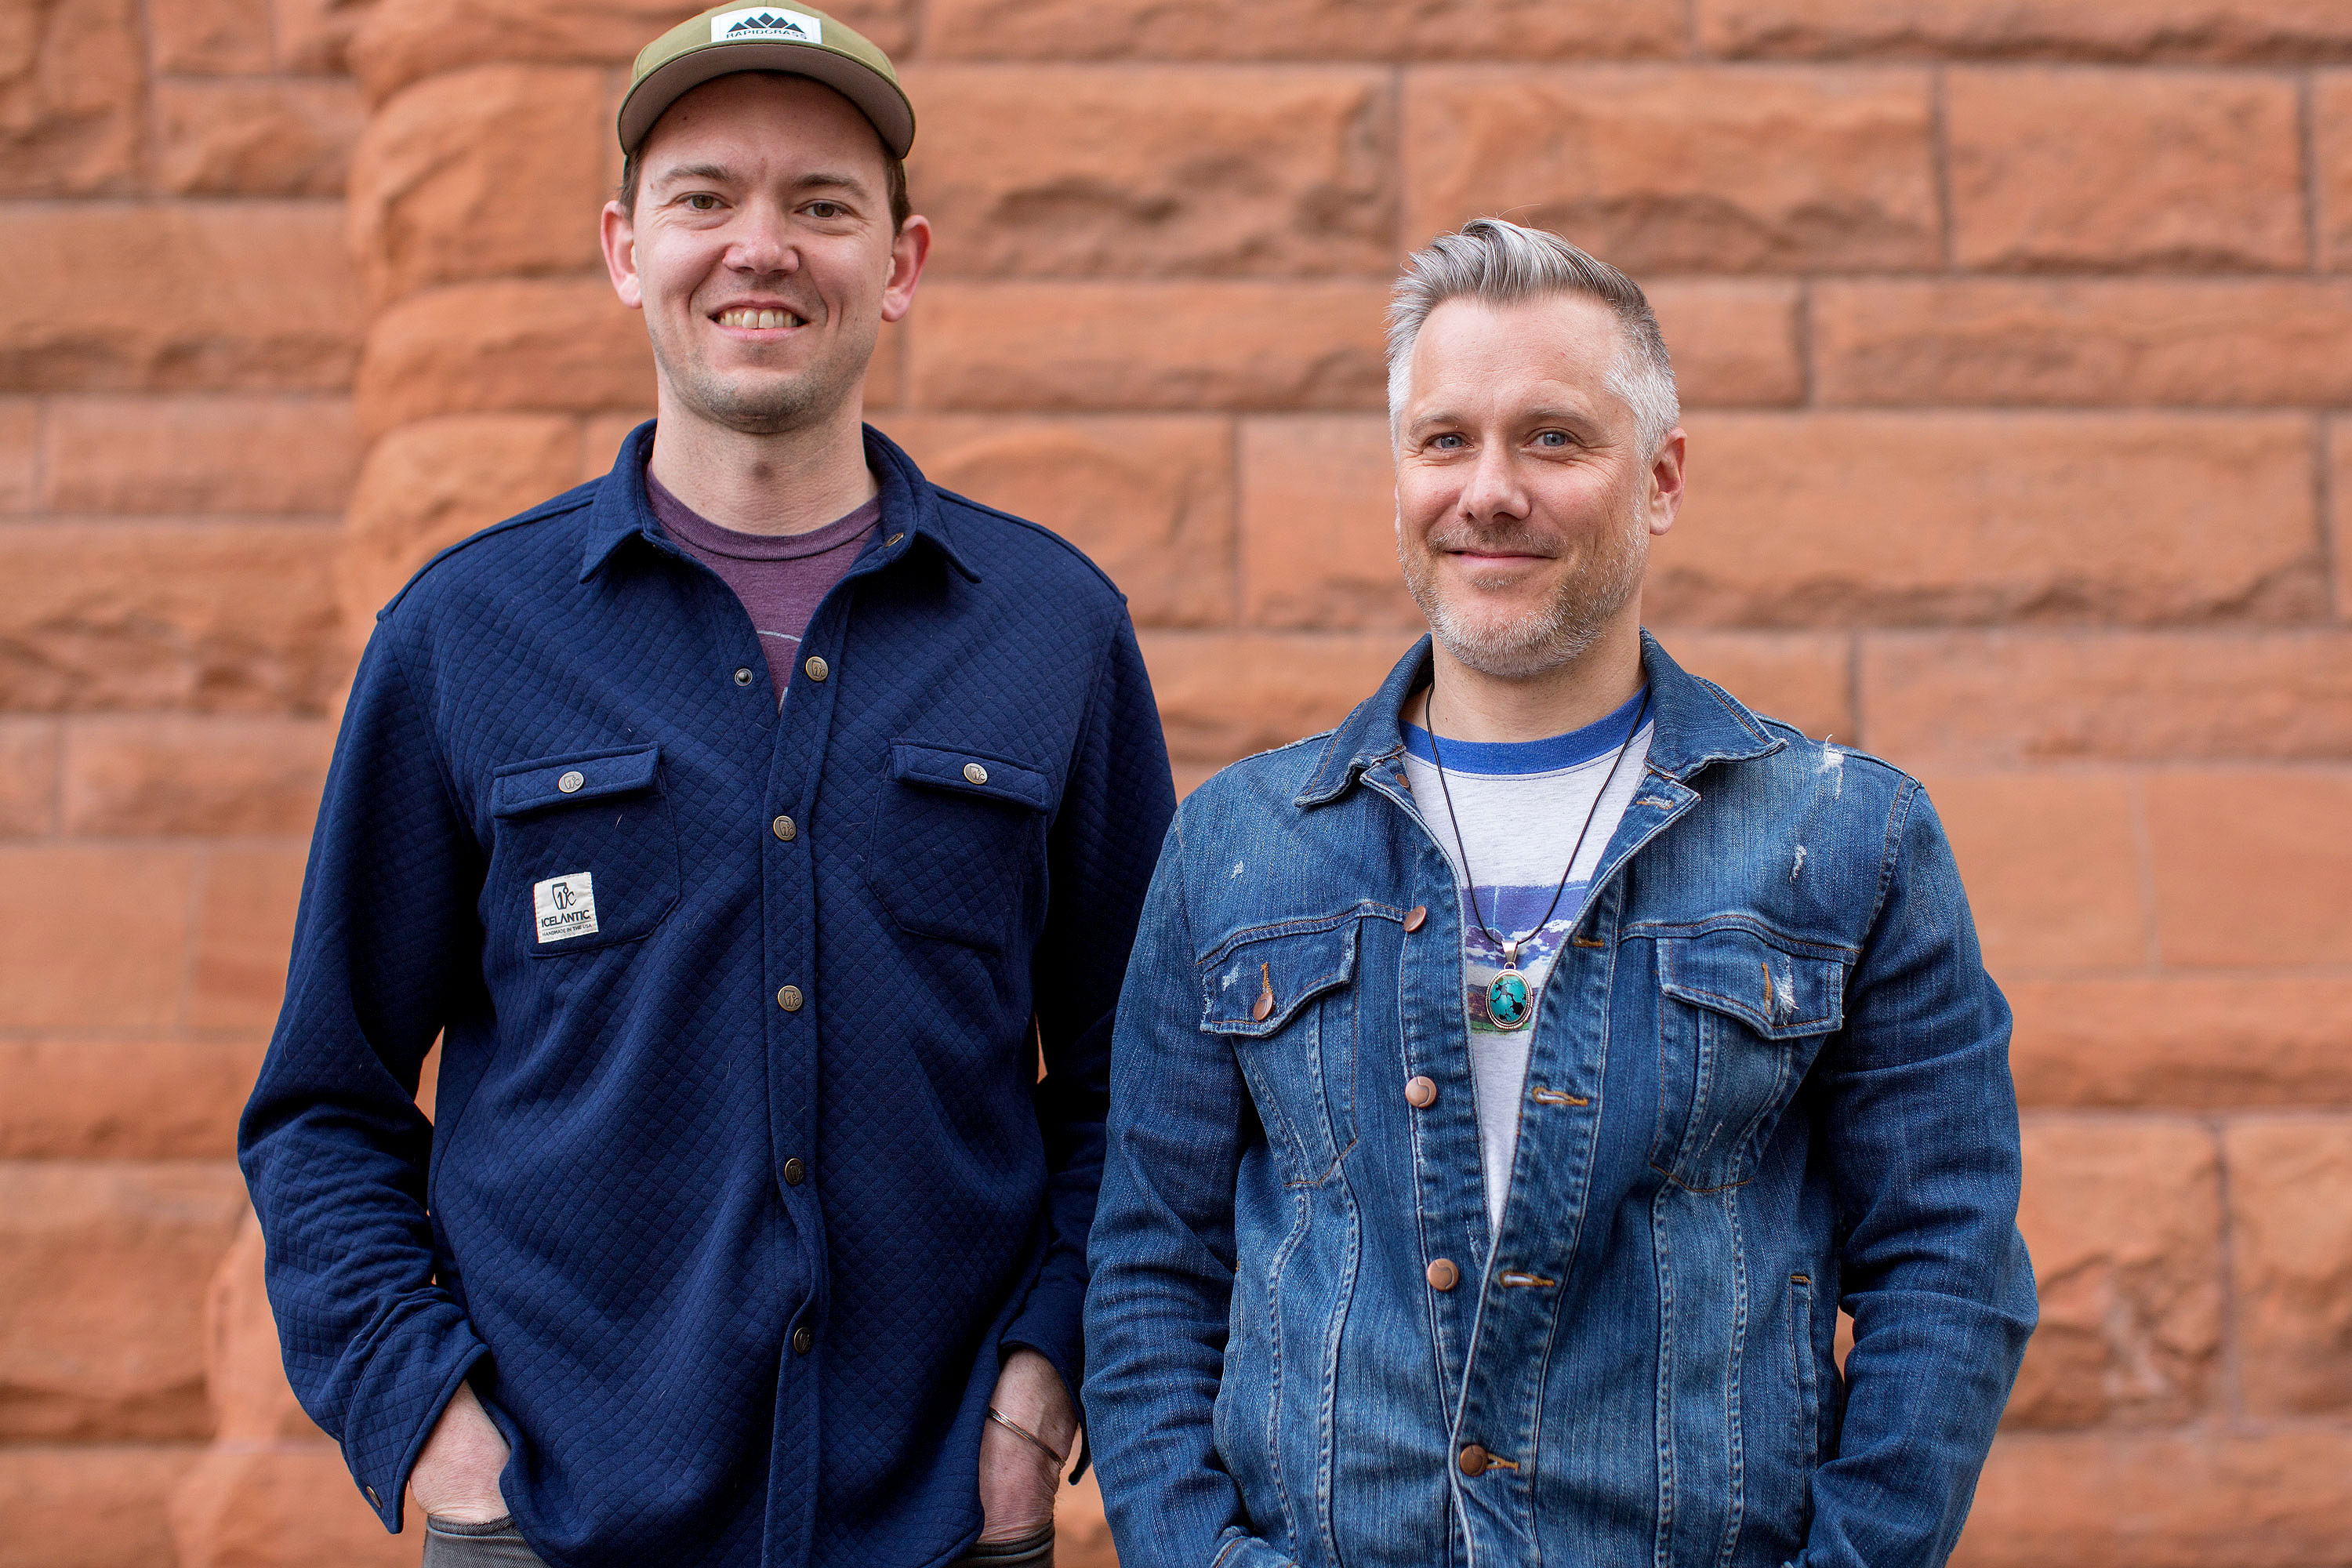 <p>Chris Pandolfi, left, and Andy Hall of the Infamous Stringdusters, photographed in Denver March 18, 2019.</p>